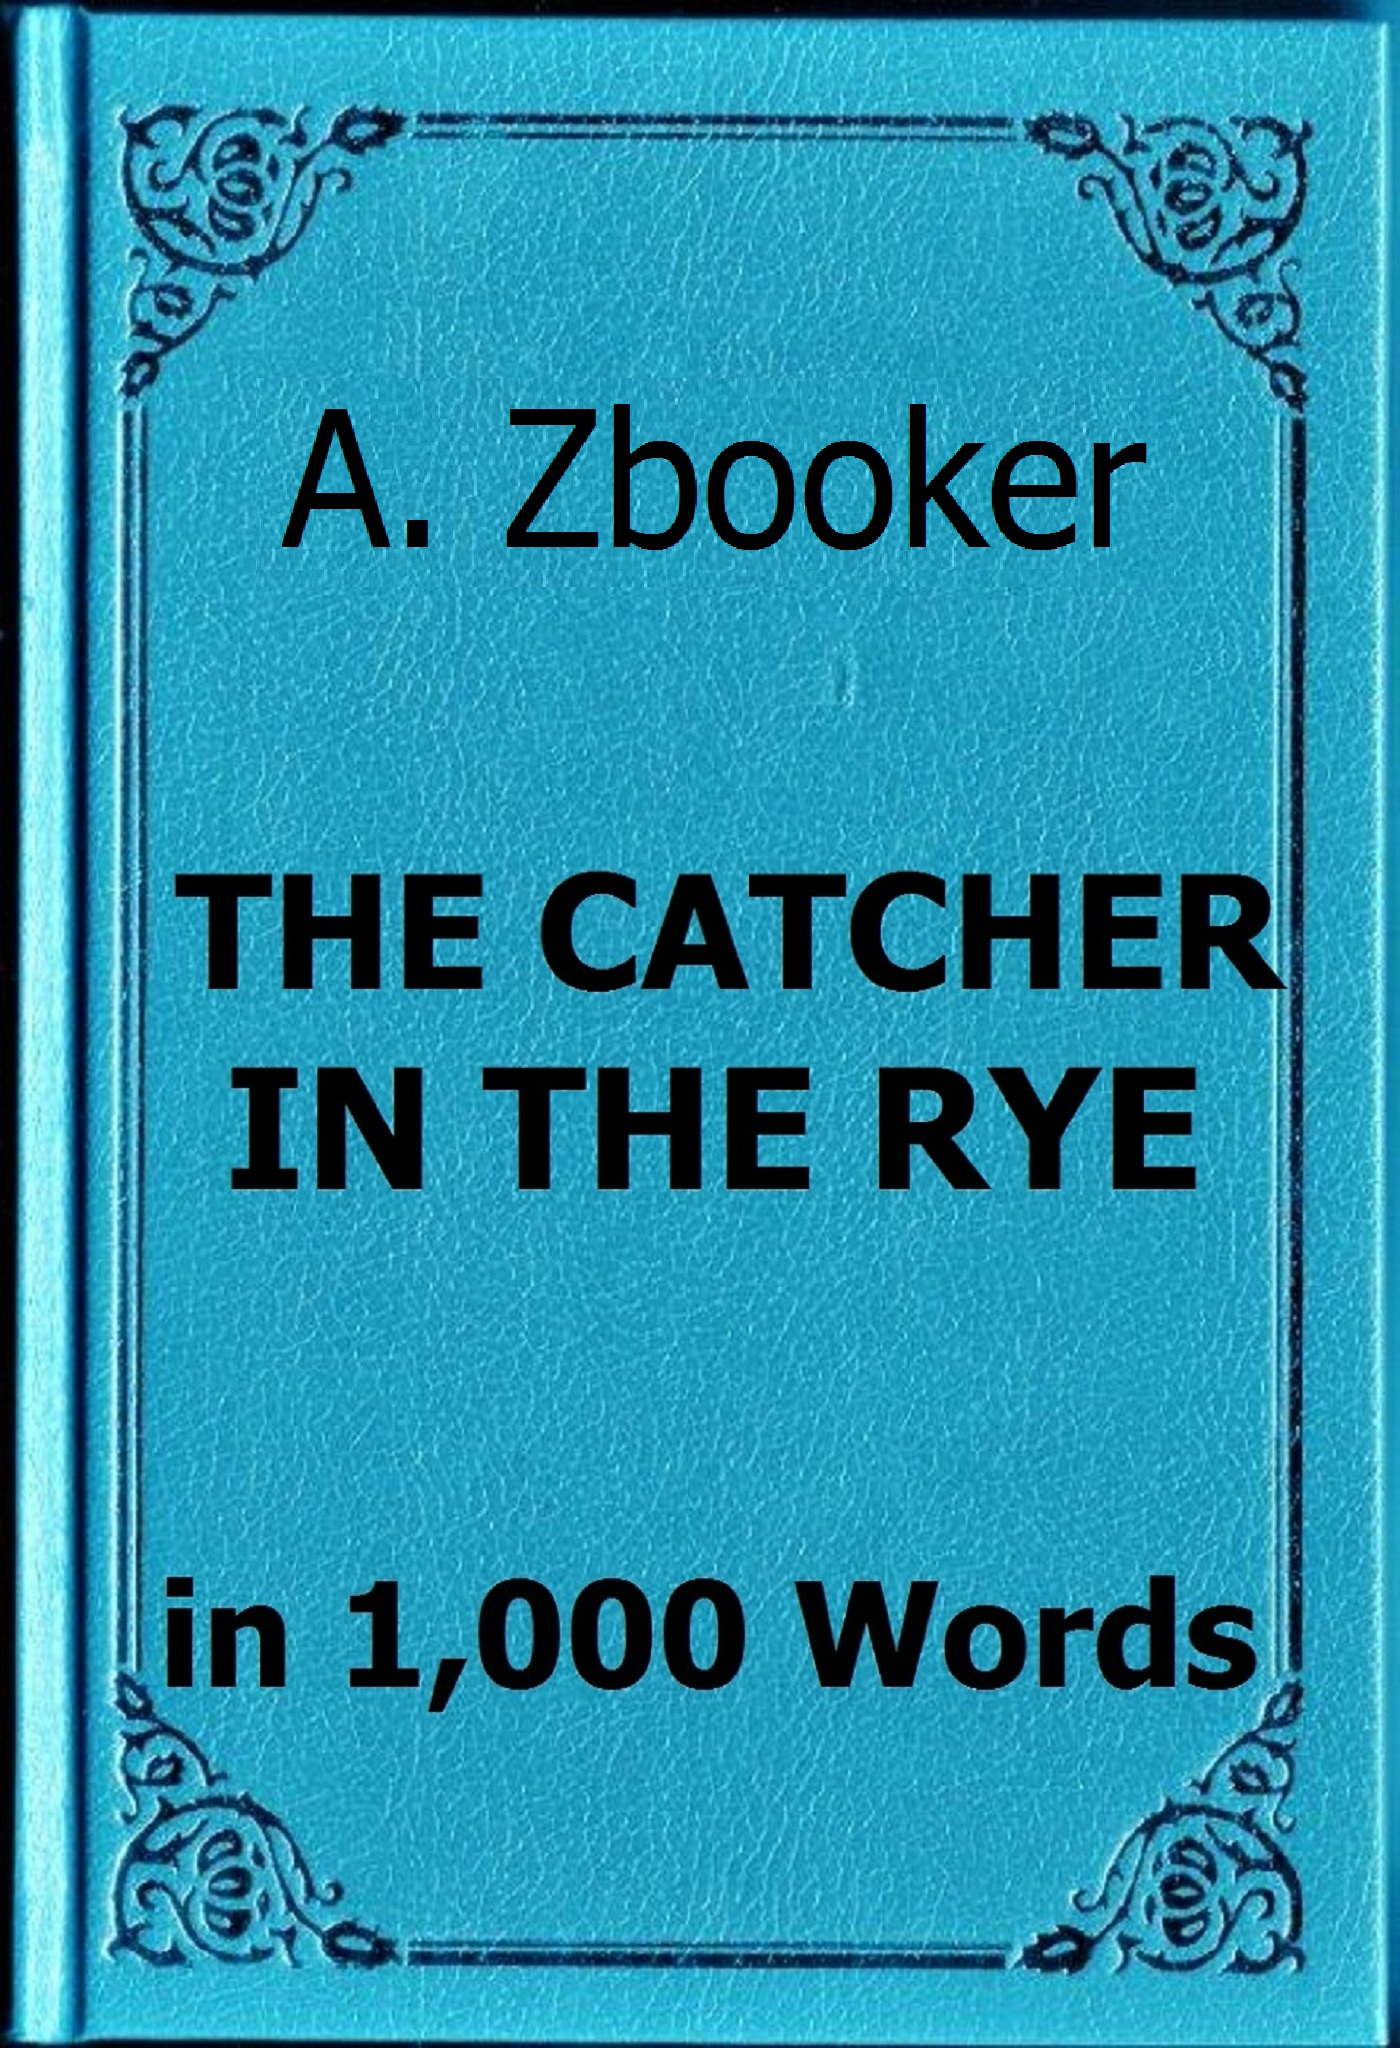 the use of many symbols in jd salingers the catcher in the rye Commentary on the book: a catcher in the rye by jd salinger 573 words contains many complex symbols, many of the symbols in the book are interconnected.